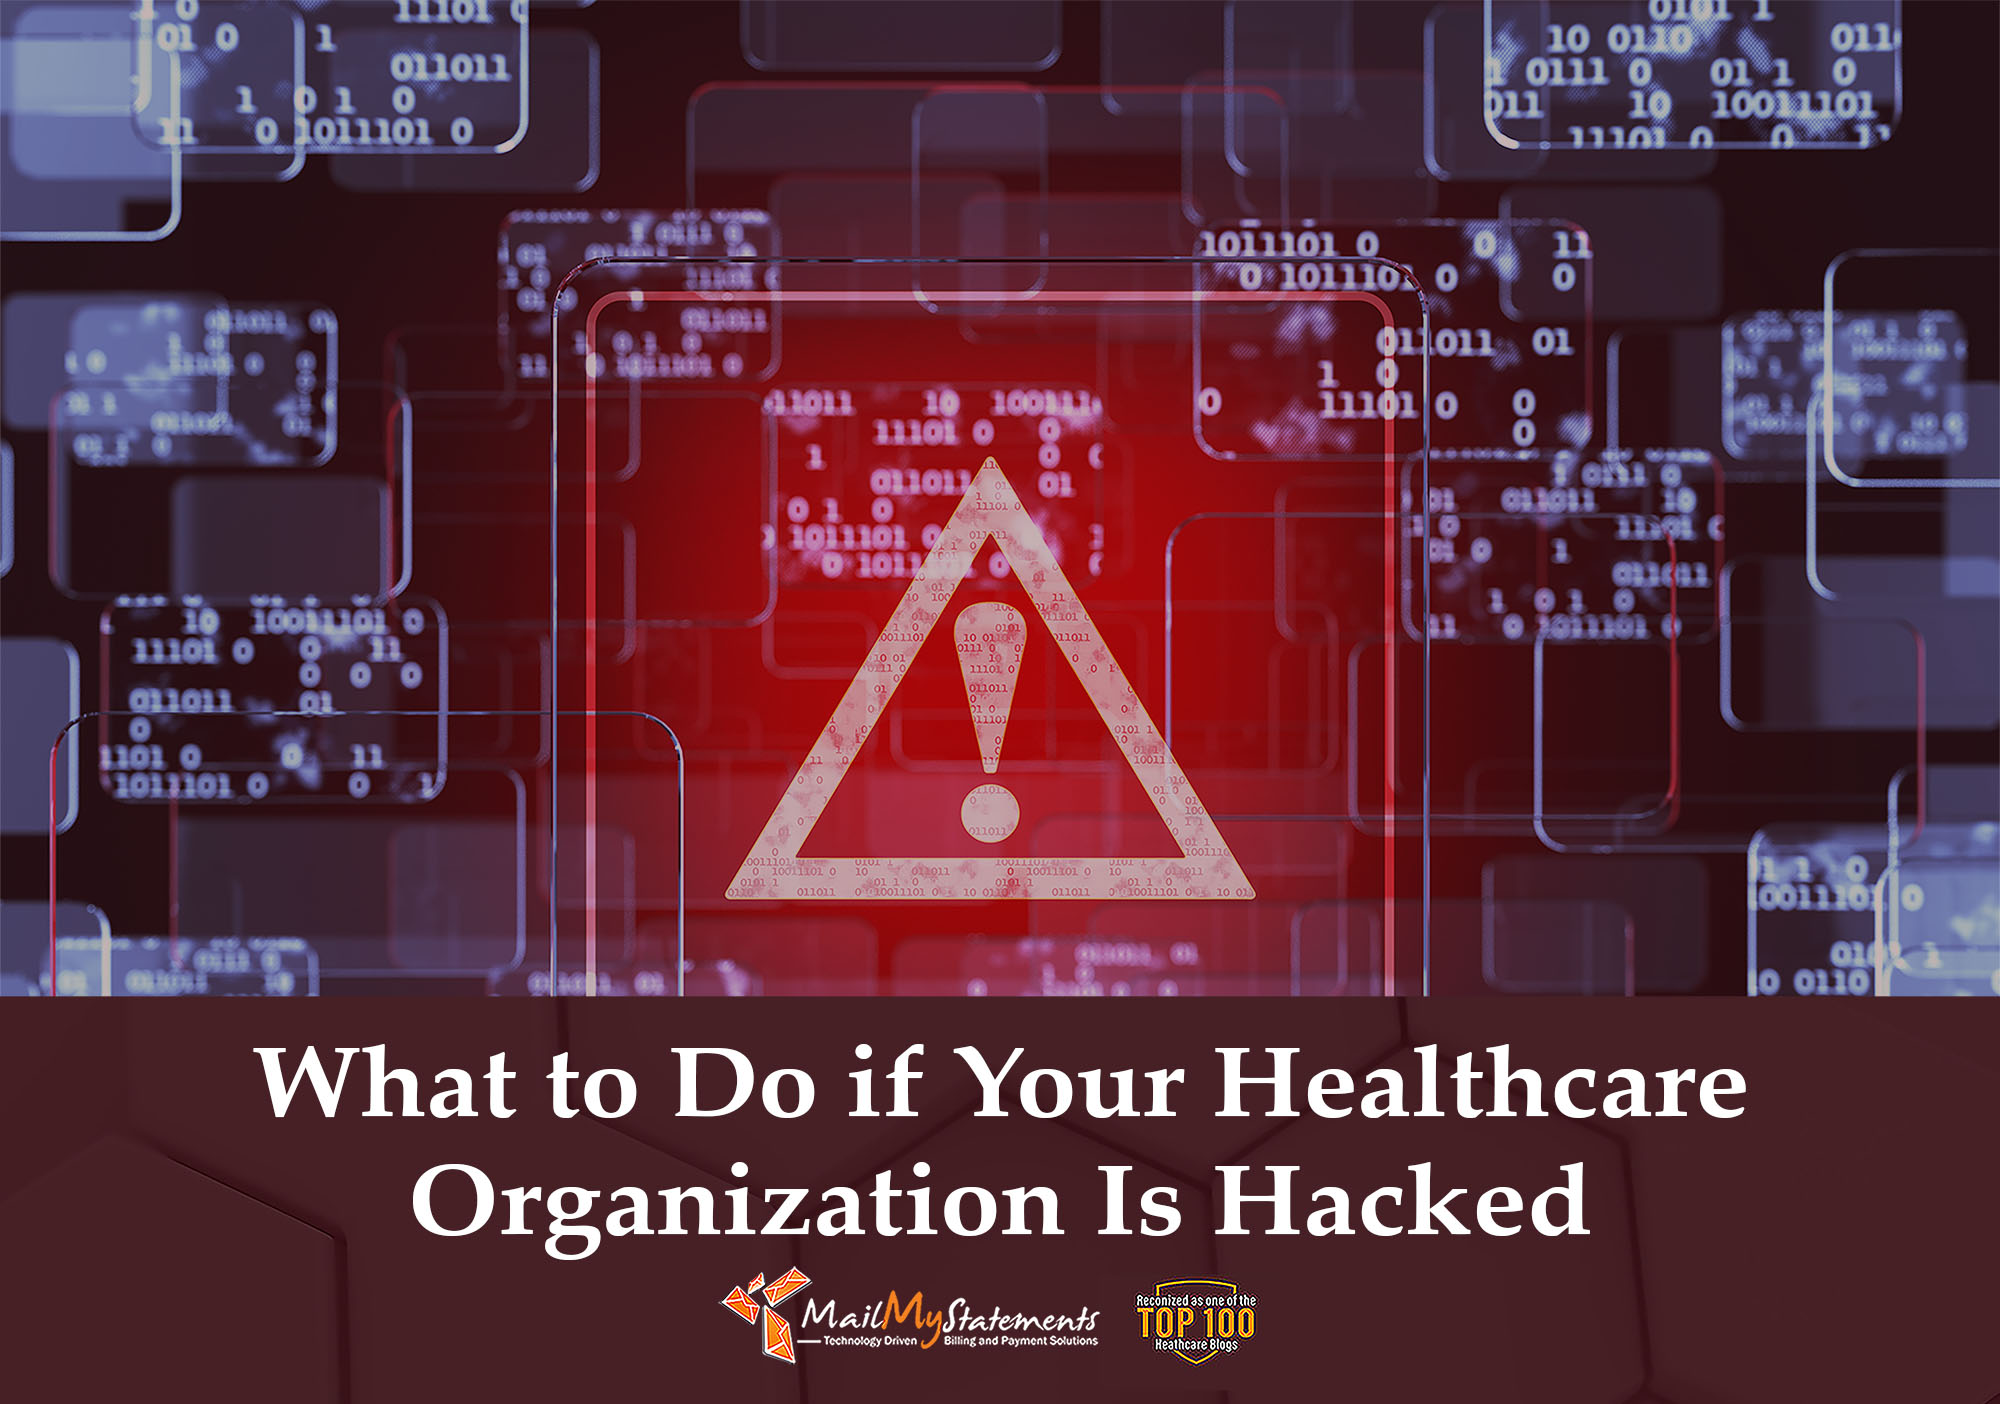 What to Do if Your Healthcare Organization Is Hacked